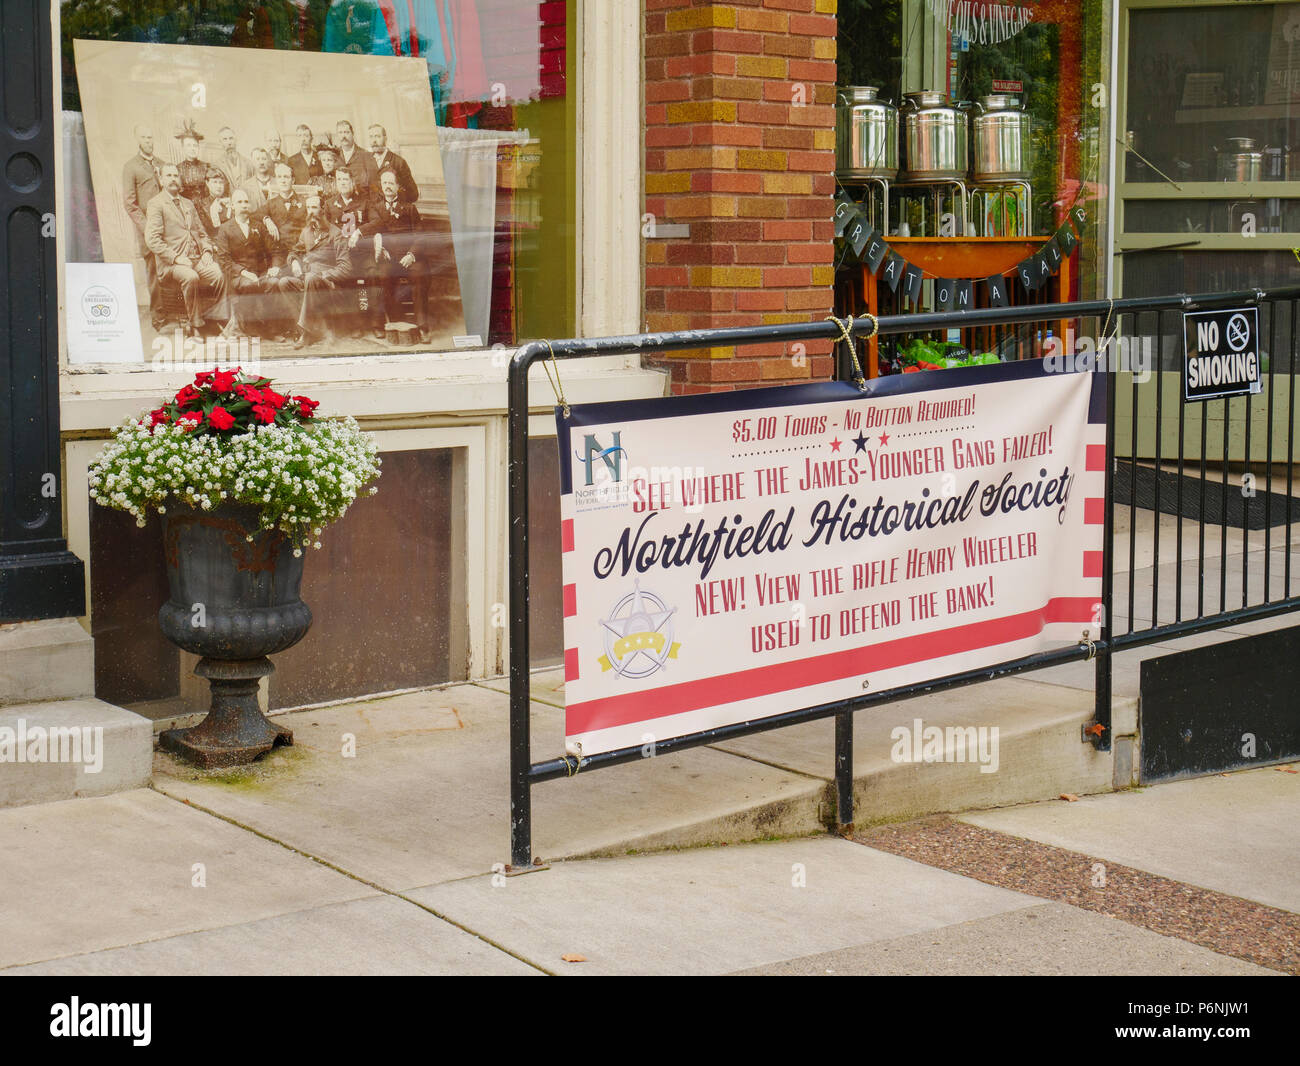 Sign promoting historical tour, James-Younger Gang bank robbery, Northfiield, Minssesota. - Stock Image